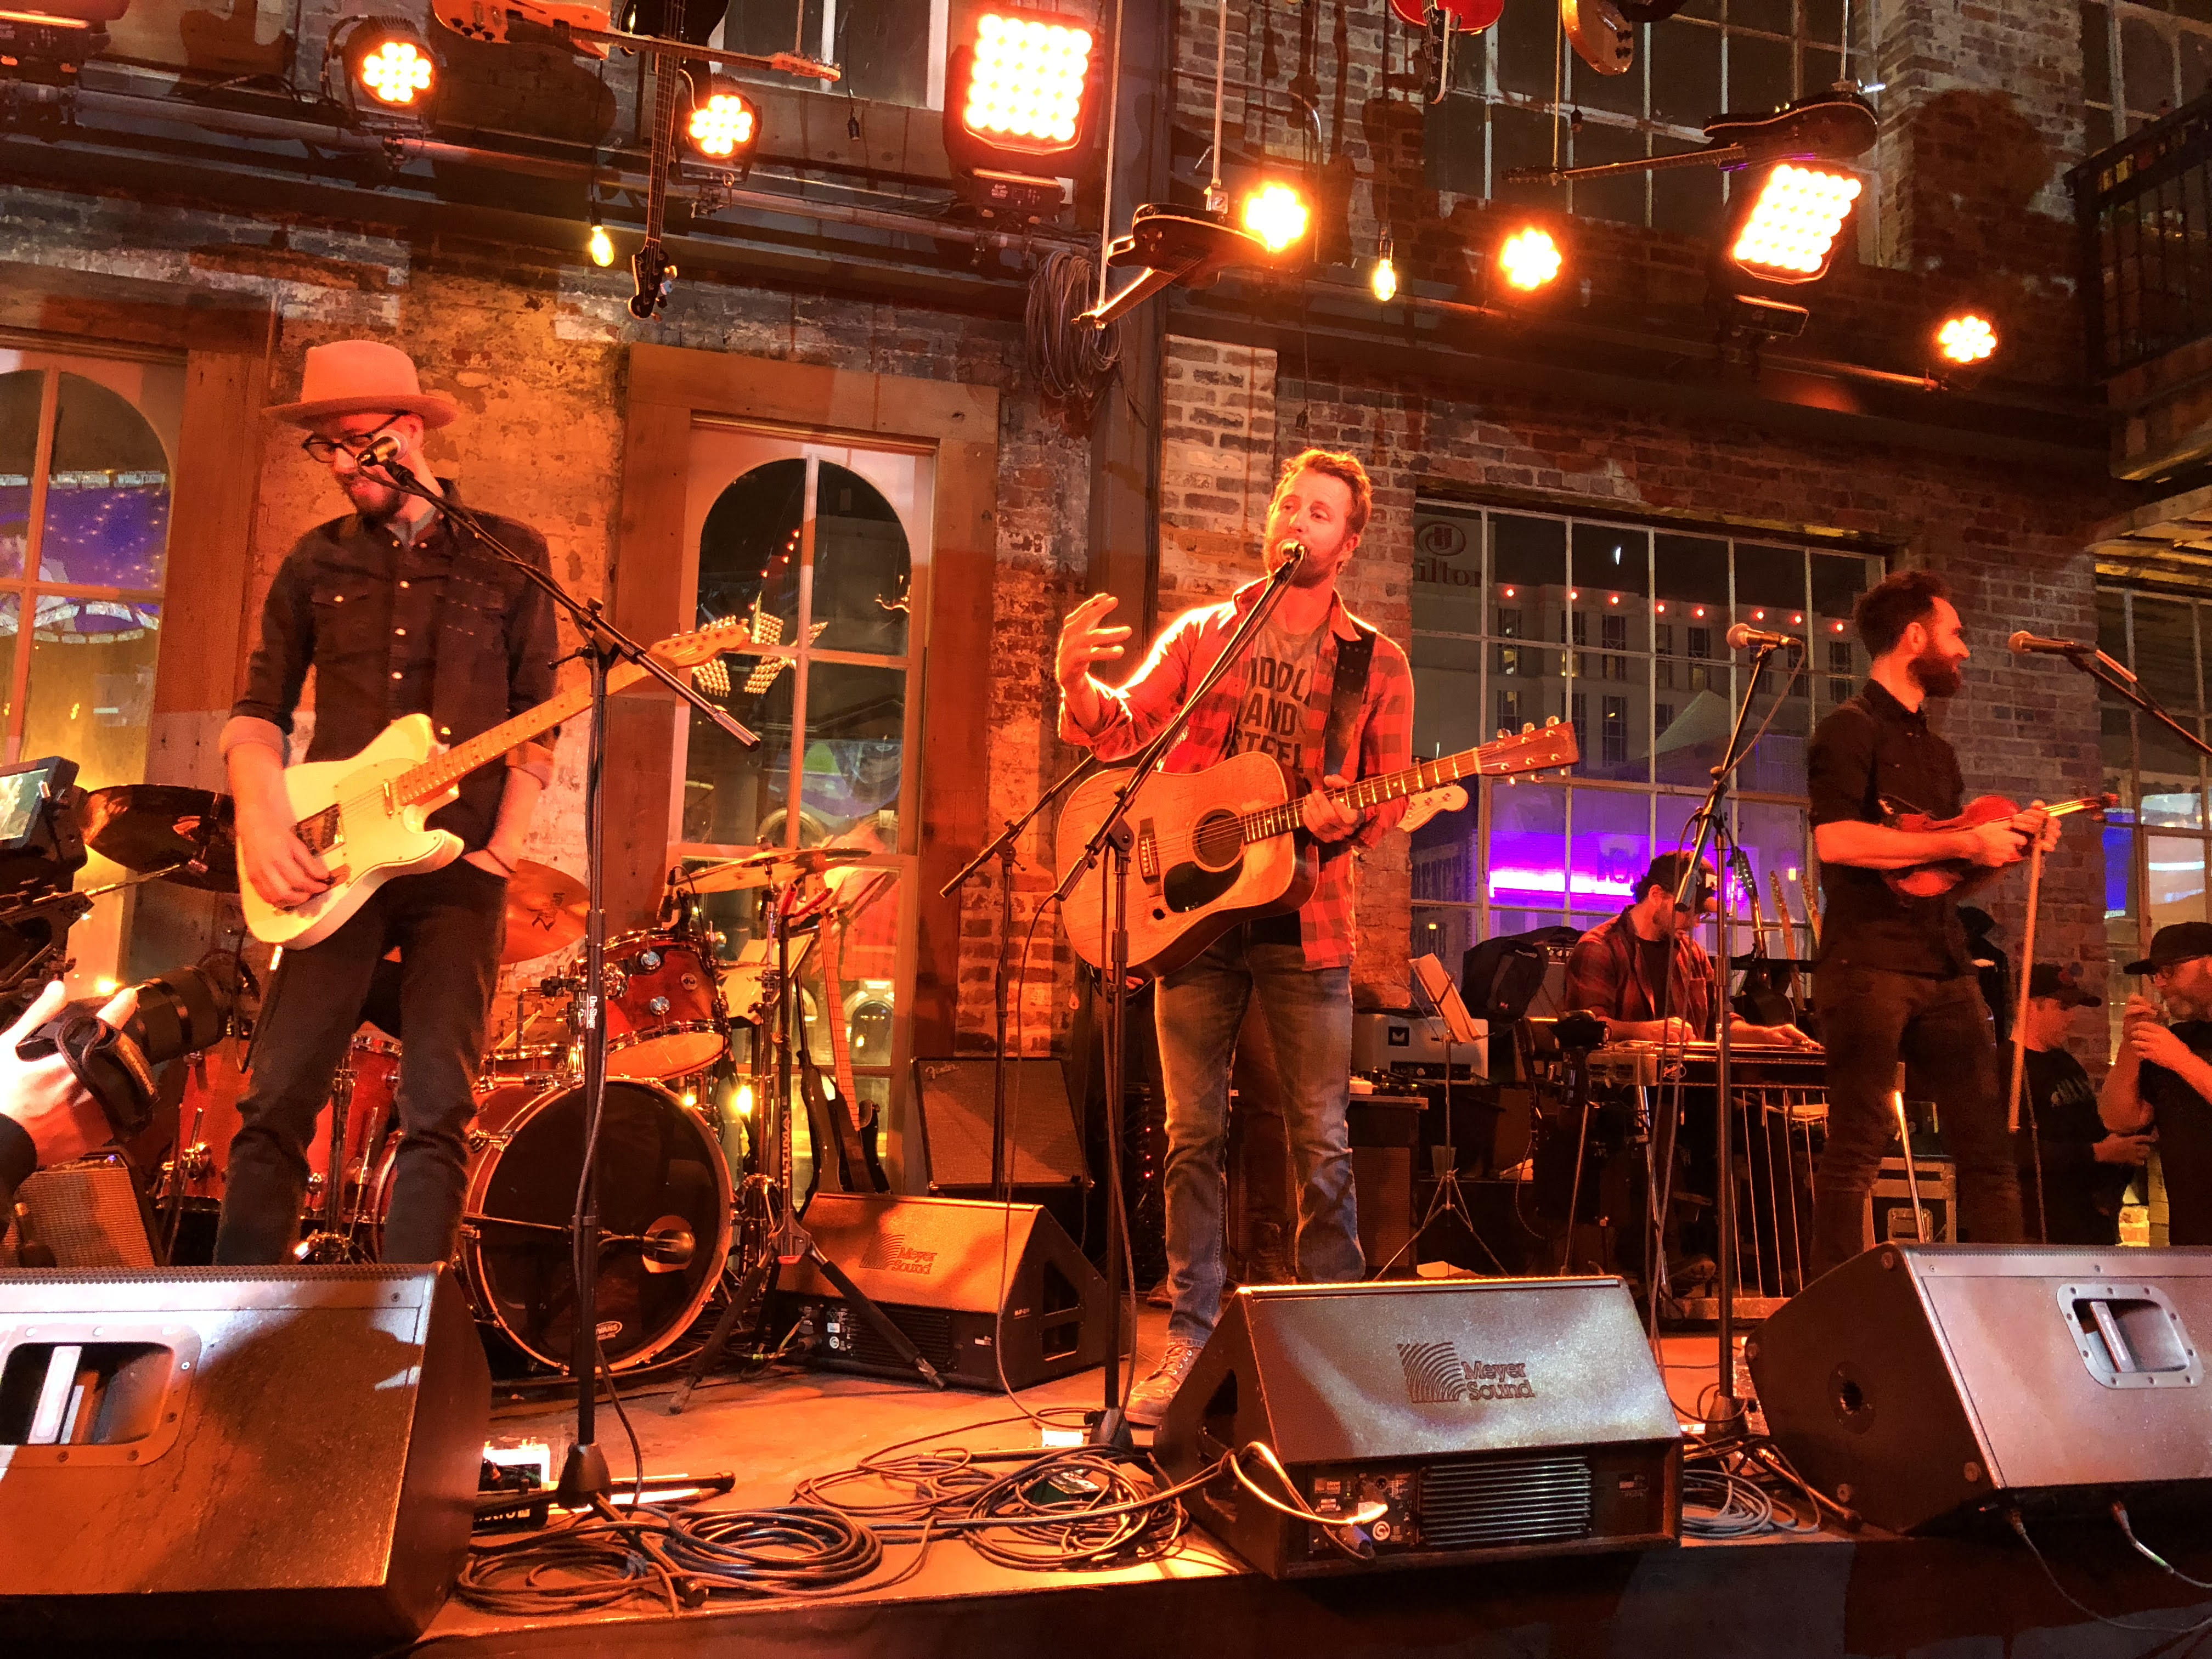 dierks bentley's whiskey row grand opening + elaina's review | nash-nl